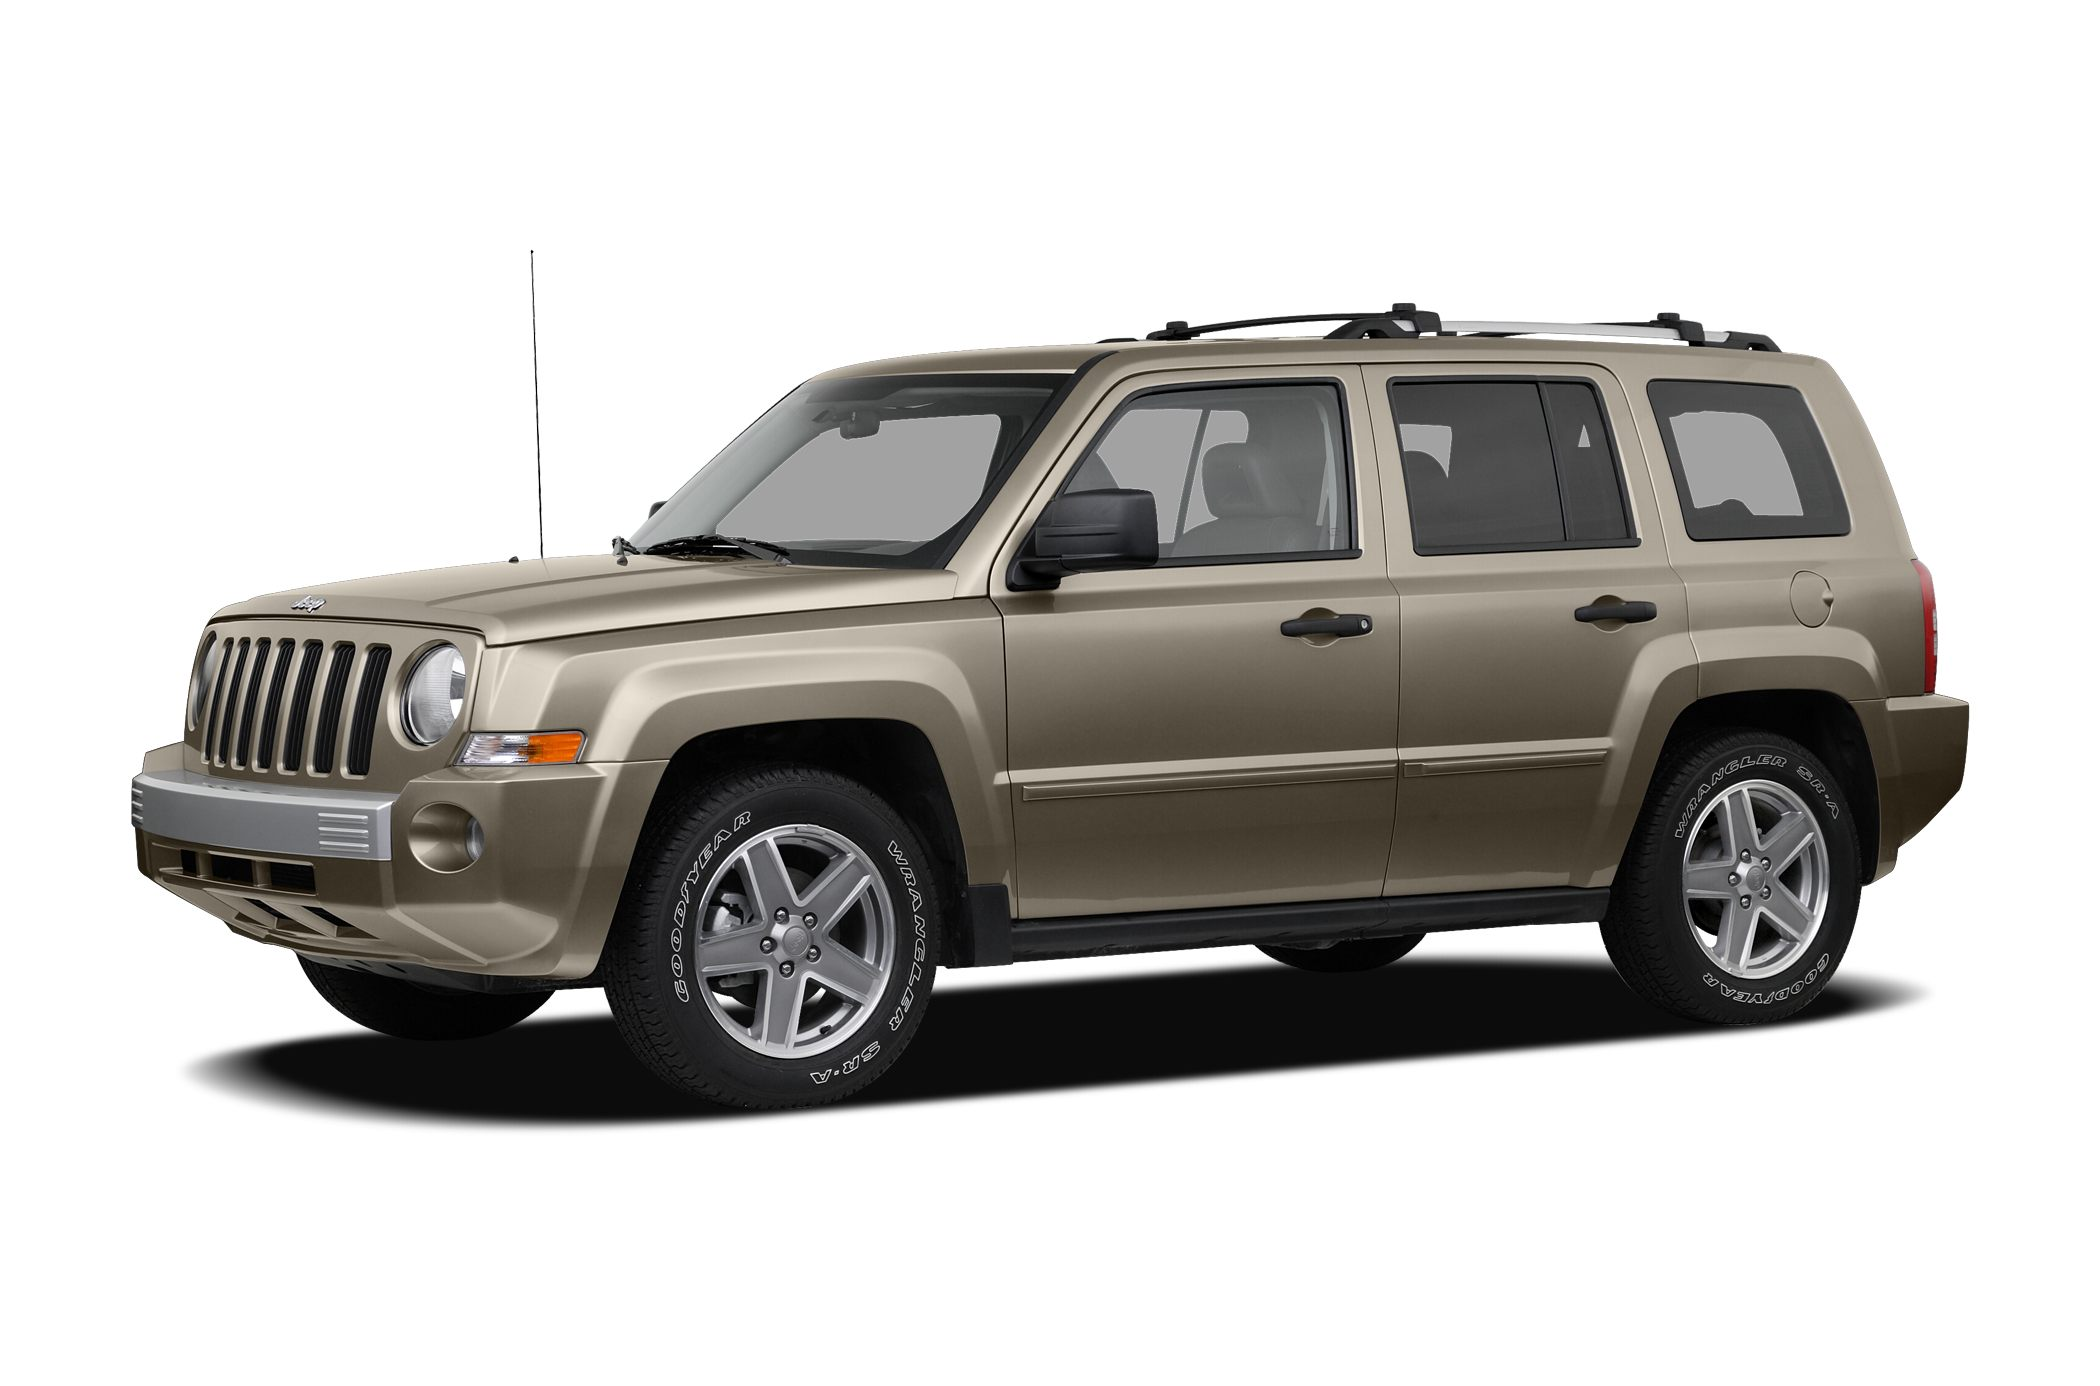 2007 jeep patriot recalls